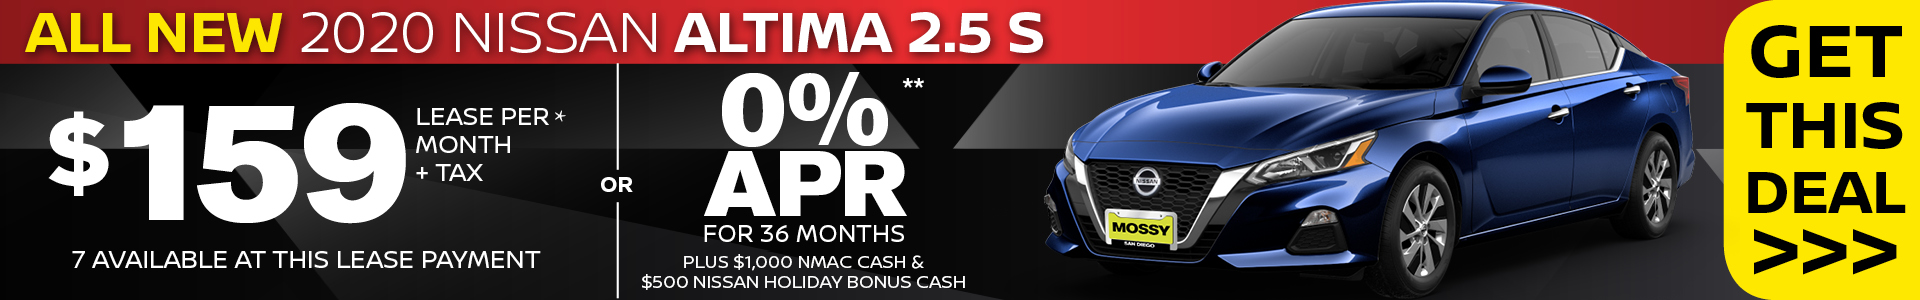 Mossy Nissan - Nissan Altima $19,995 Purchase SRP